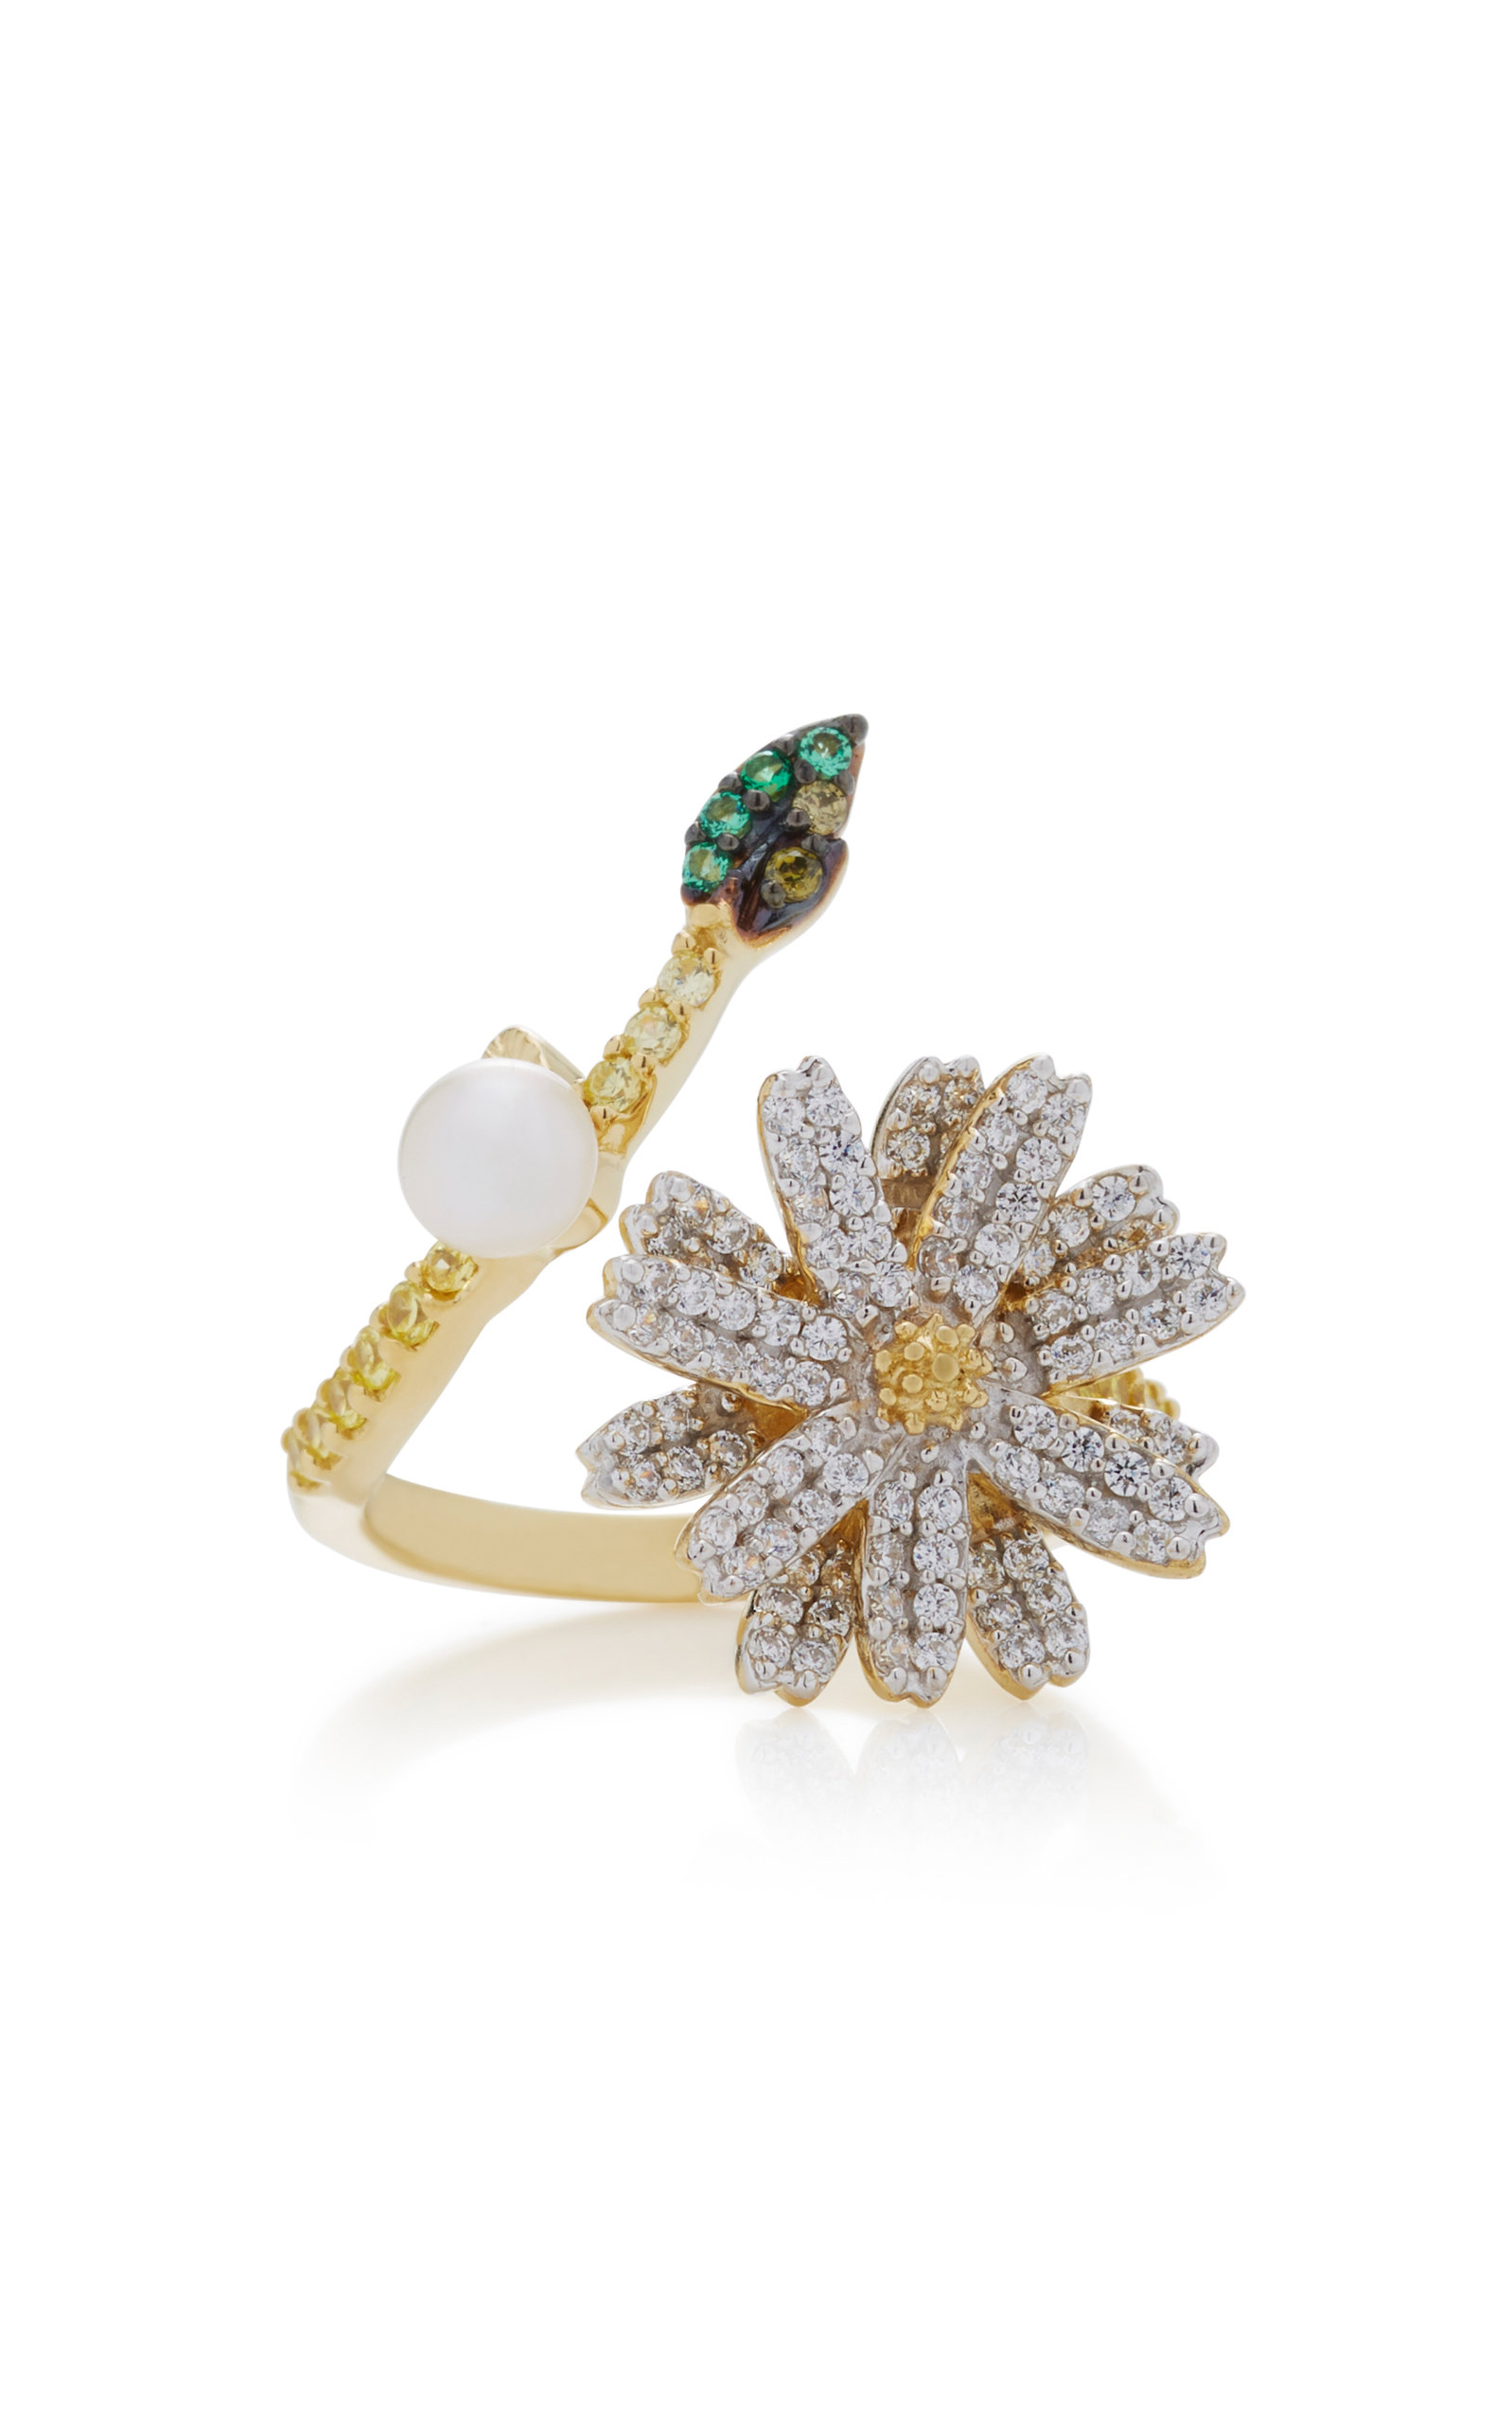 Women's 18K Gold Vermeil And Multi-Stone Ring